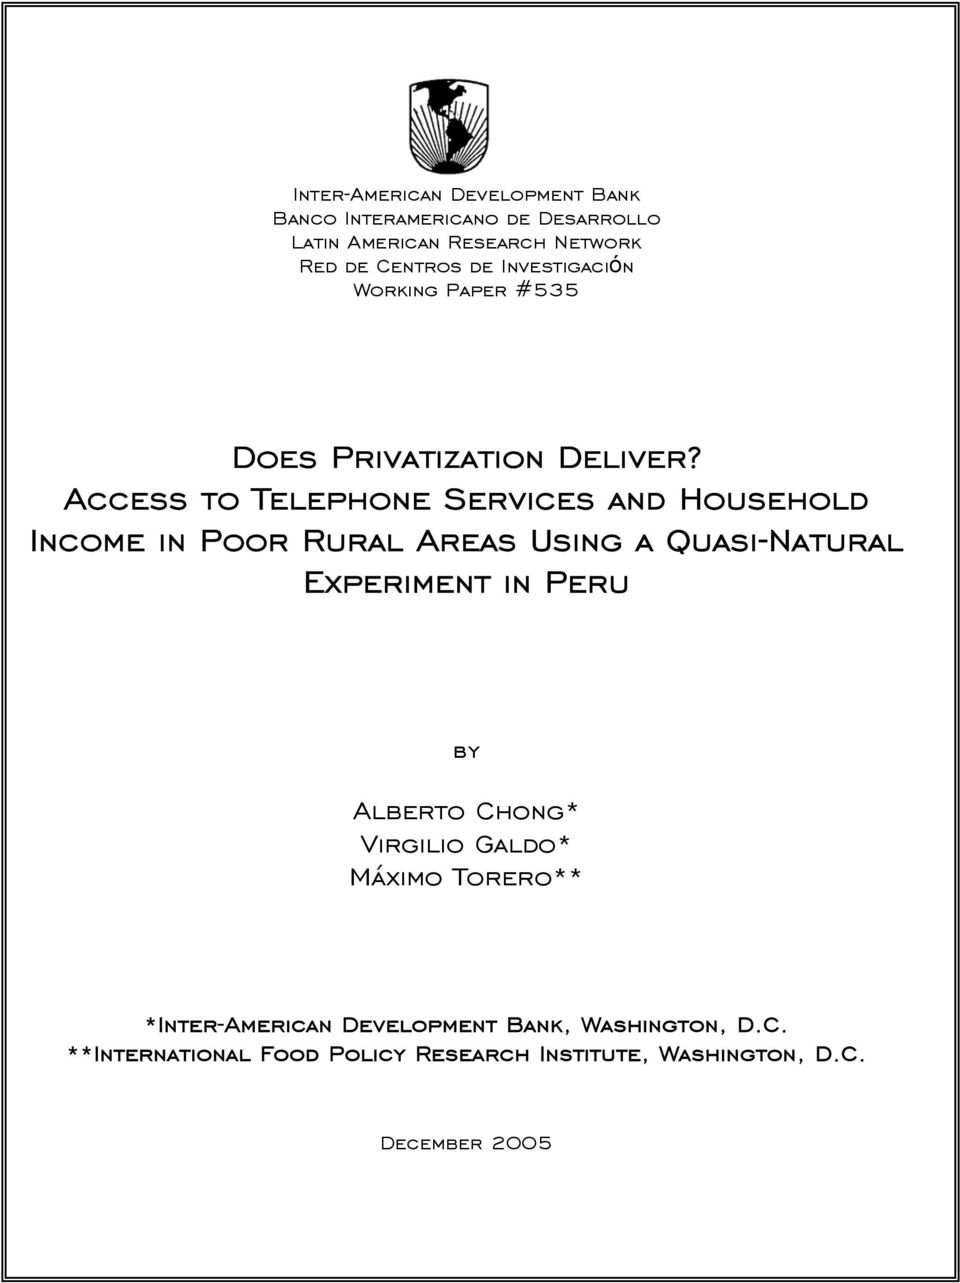 Access to Telephone Services and Household Income in Poor Rural Areas Using a Quasi-Natural Experiment in Peru by